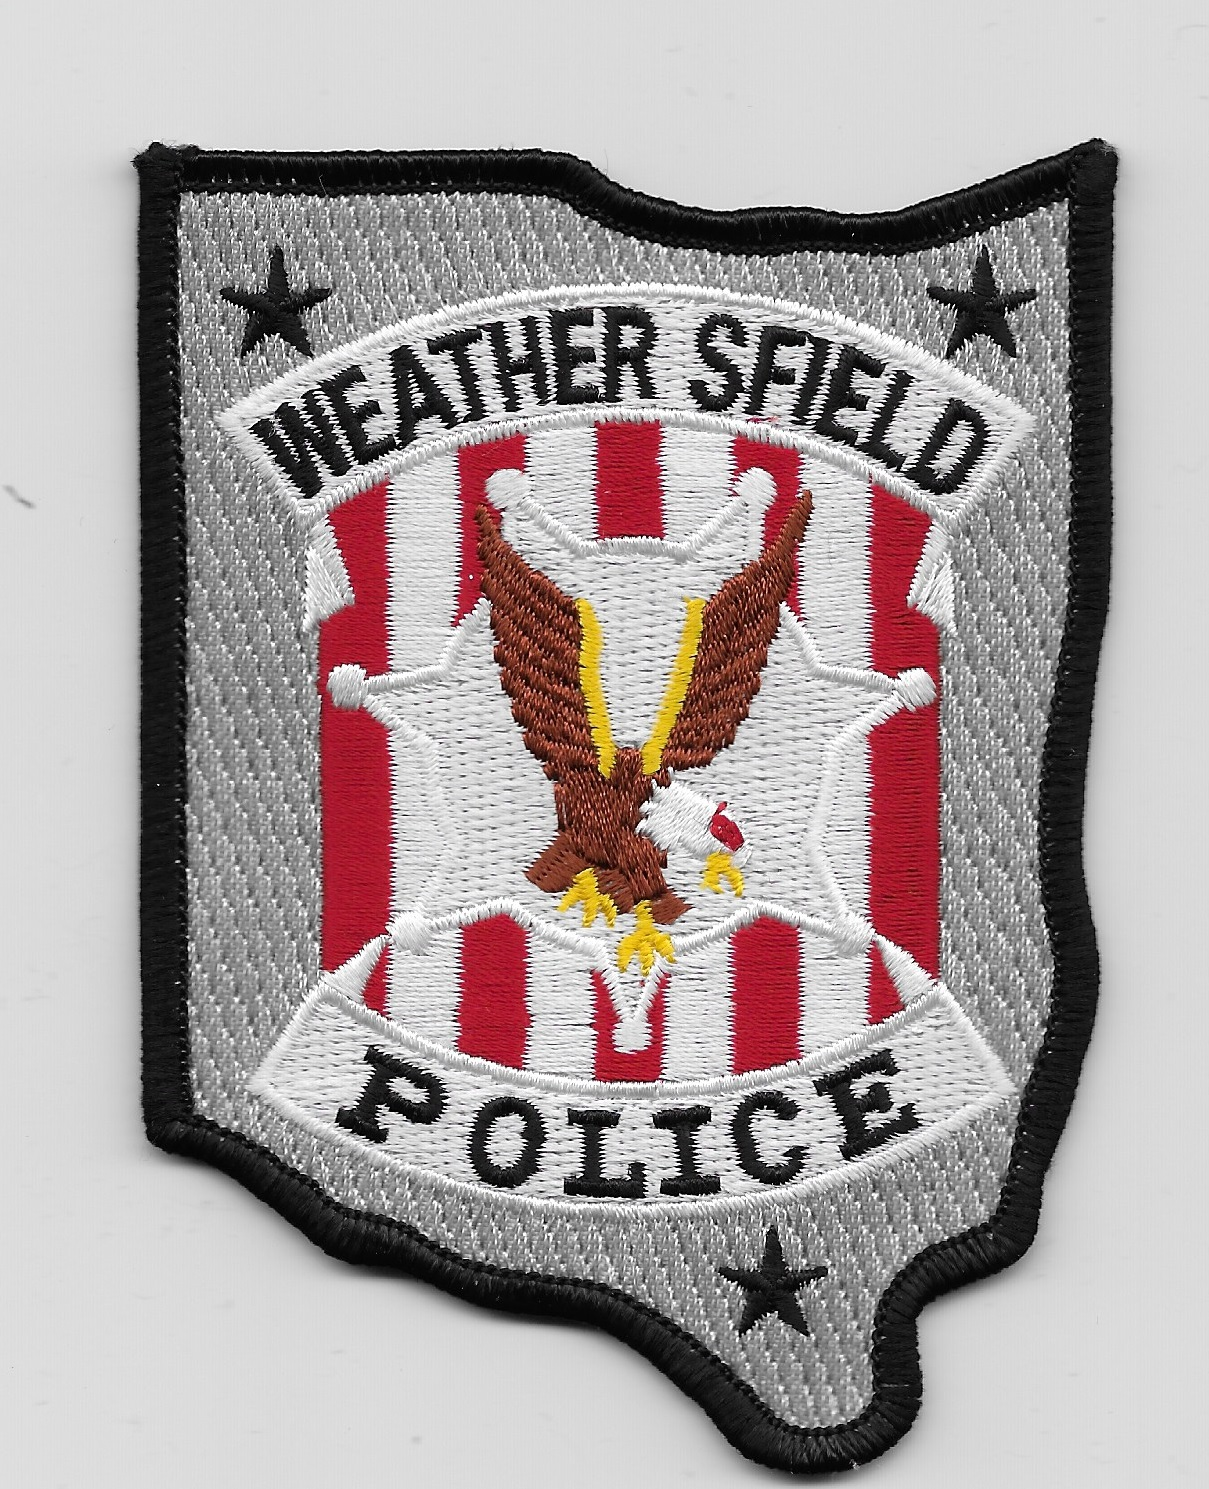 Weathersfield Police OH